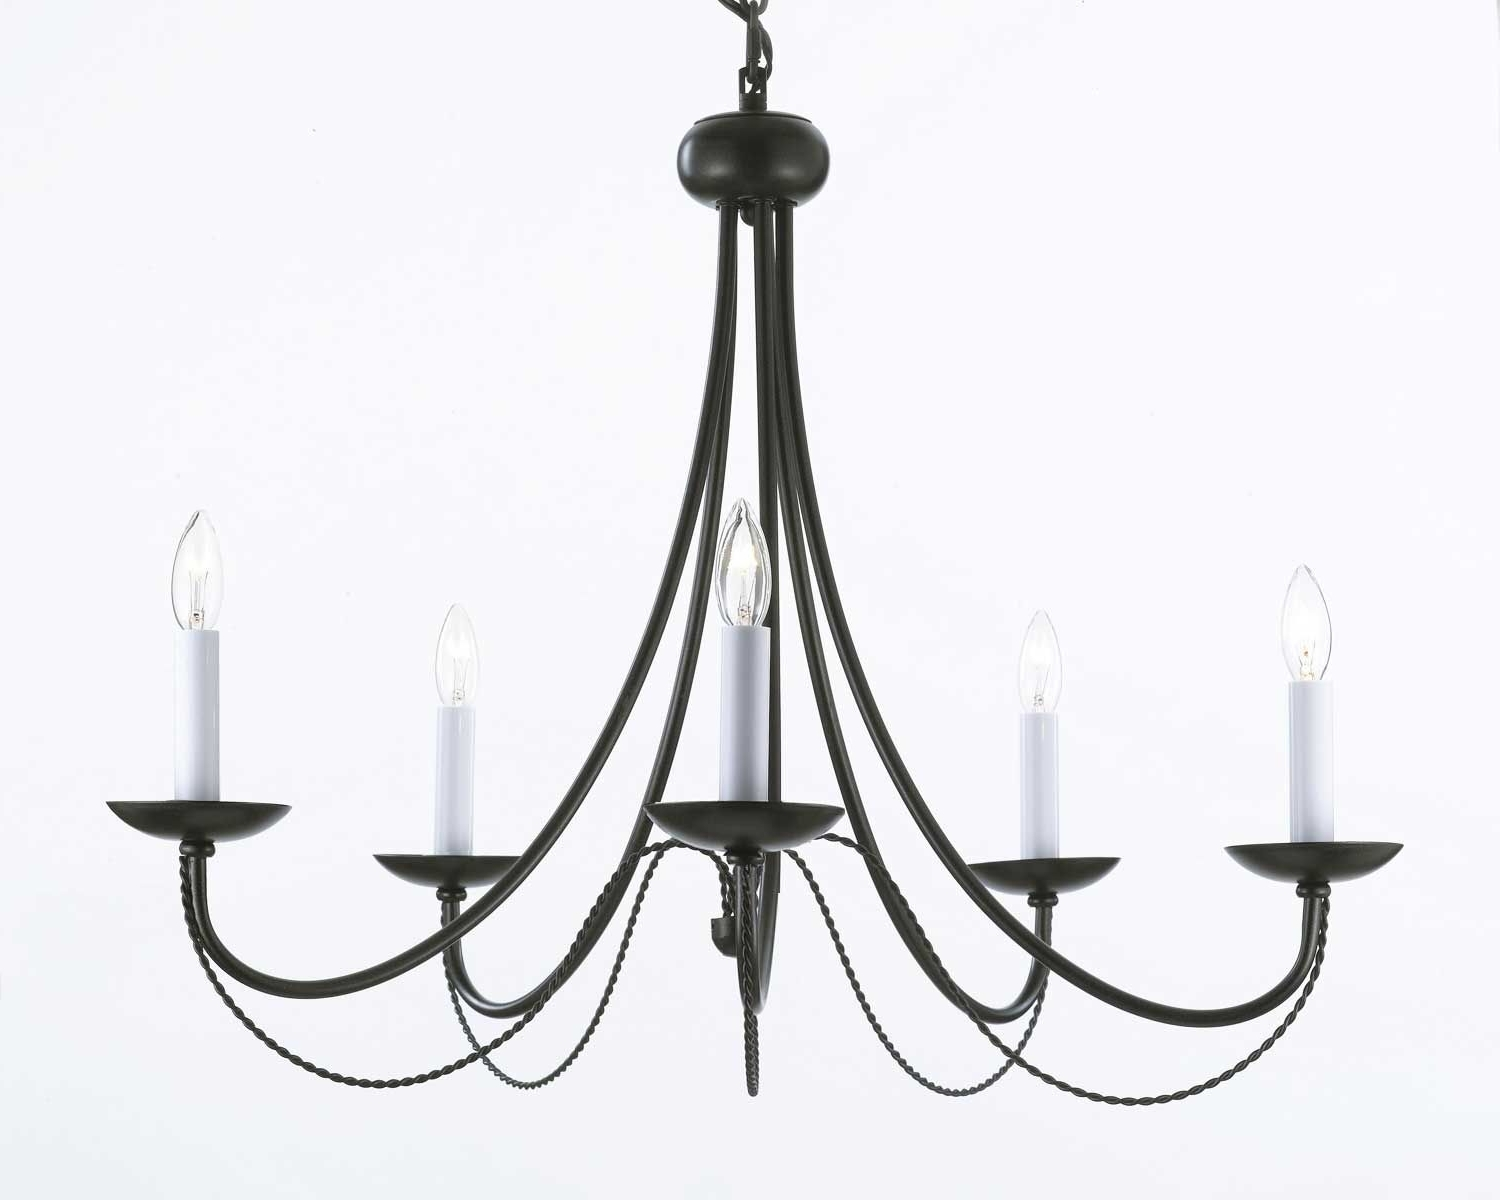 Candle Look Chandeliers With Regard To 2019 G7 403/5 Wrought Iron Chandelier Chandeliers, Crystal Chandelier (View 18 of 20)